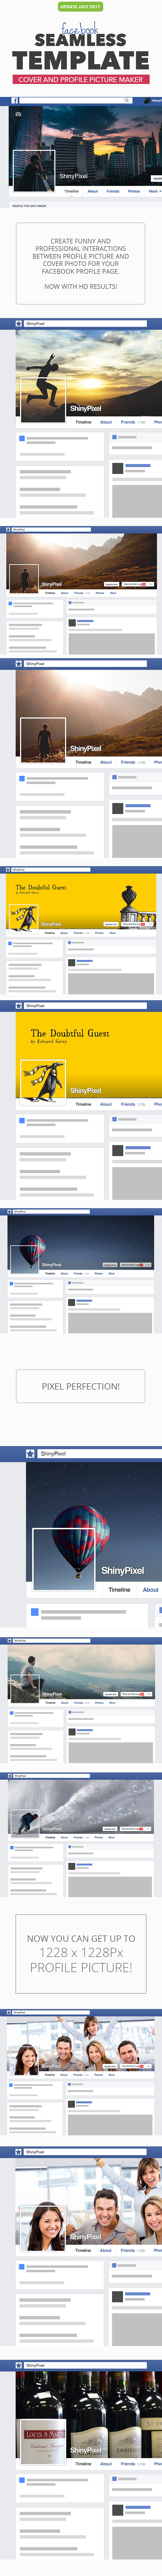 Facebook Seamless Template HD - Utilities Actions